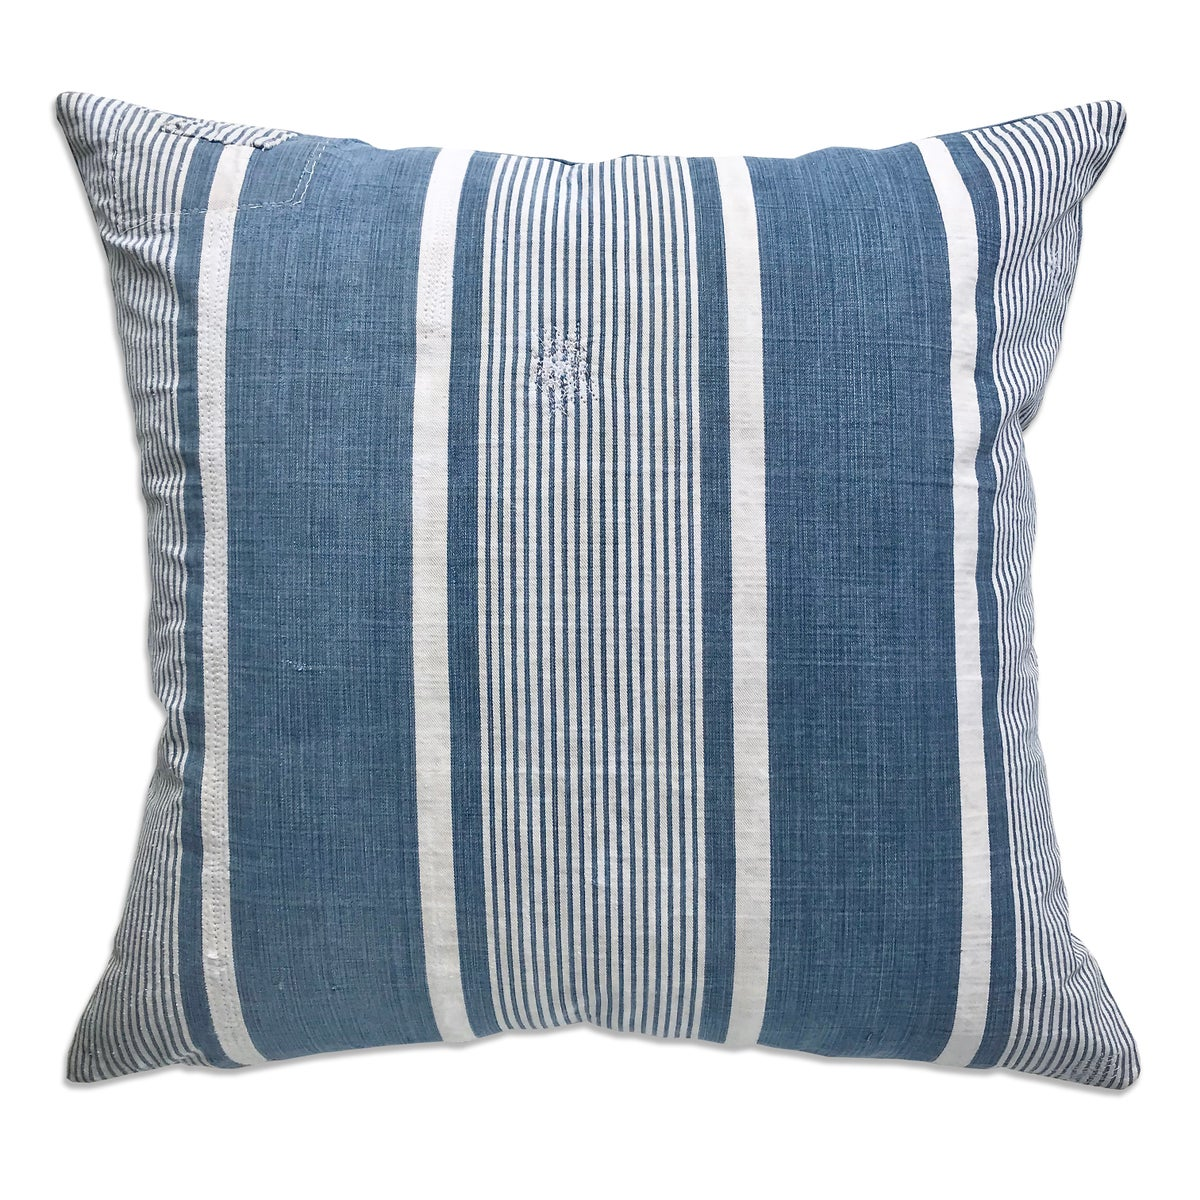 Image of VINTAGE FRENCH TICKING STRIPE PILLOW